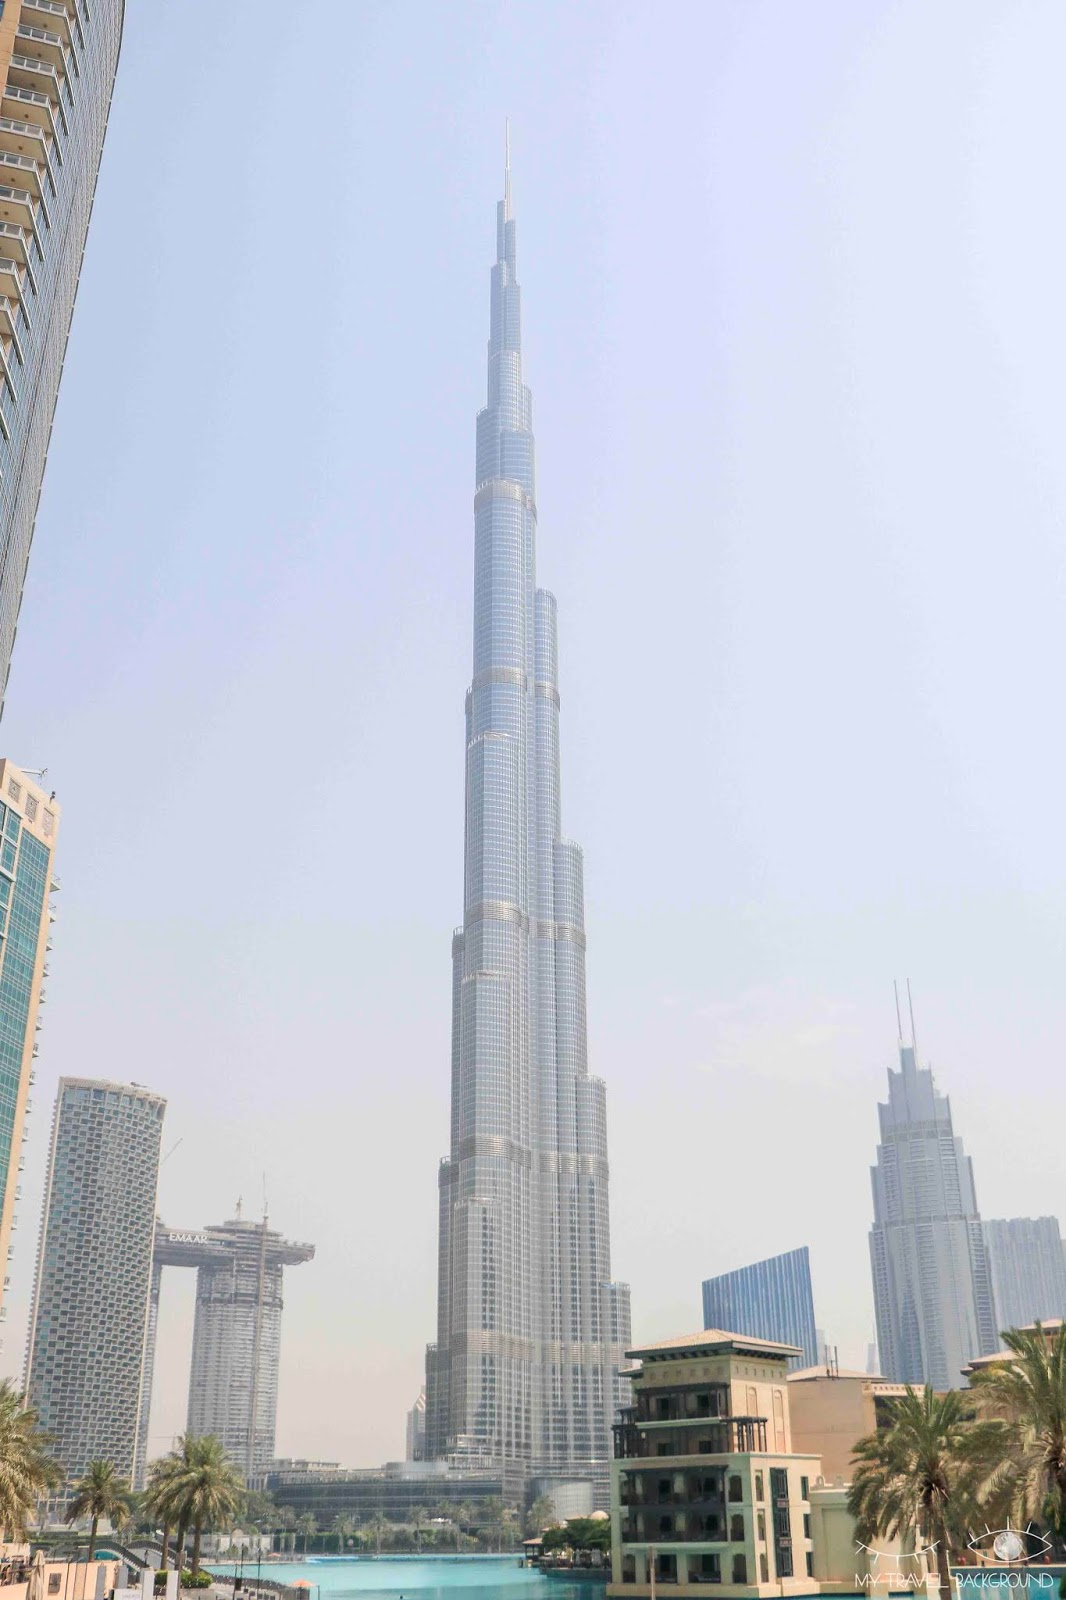 My Travel Background : Escale à Dubaï, que visiter en 3 jours ? - Burj Khalifa